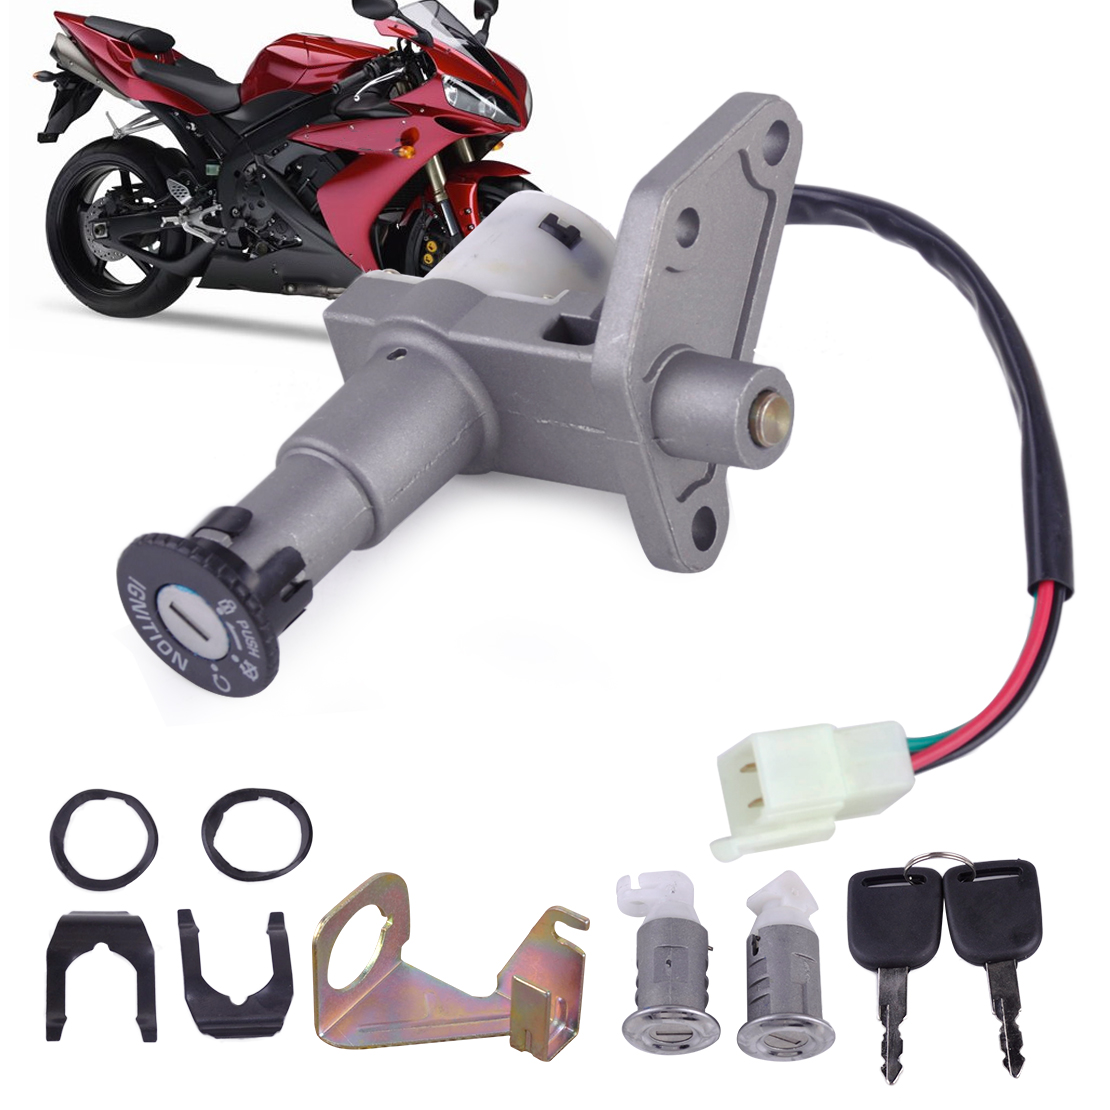 New Arrival High Quality Moped Scooter Ignition Key Switch Lock Toolbox Cushion Lock fit for 50-150cc GY6 Chinese Part 4 Wire